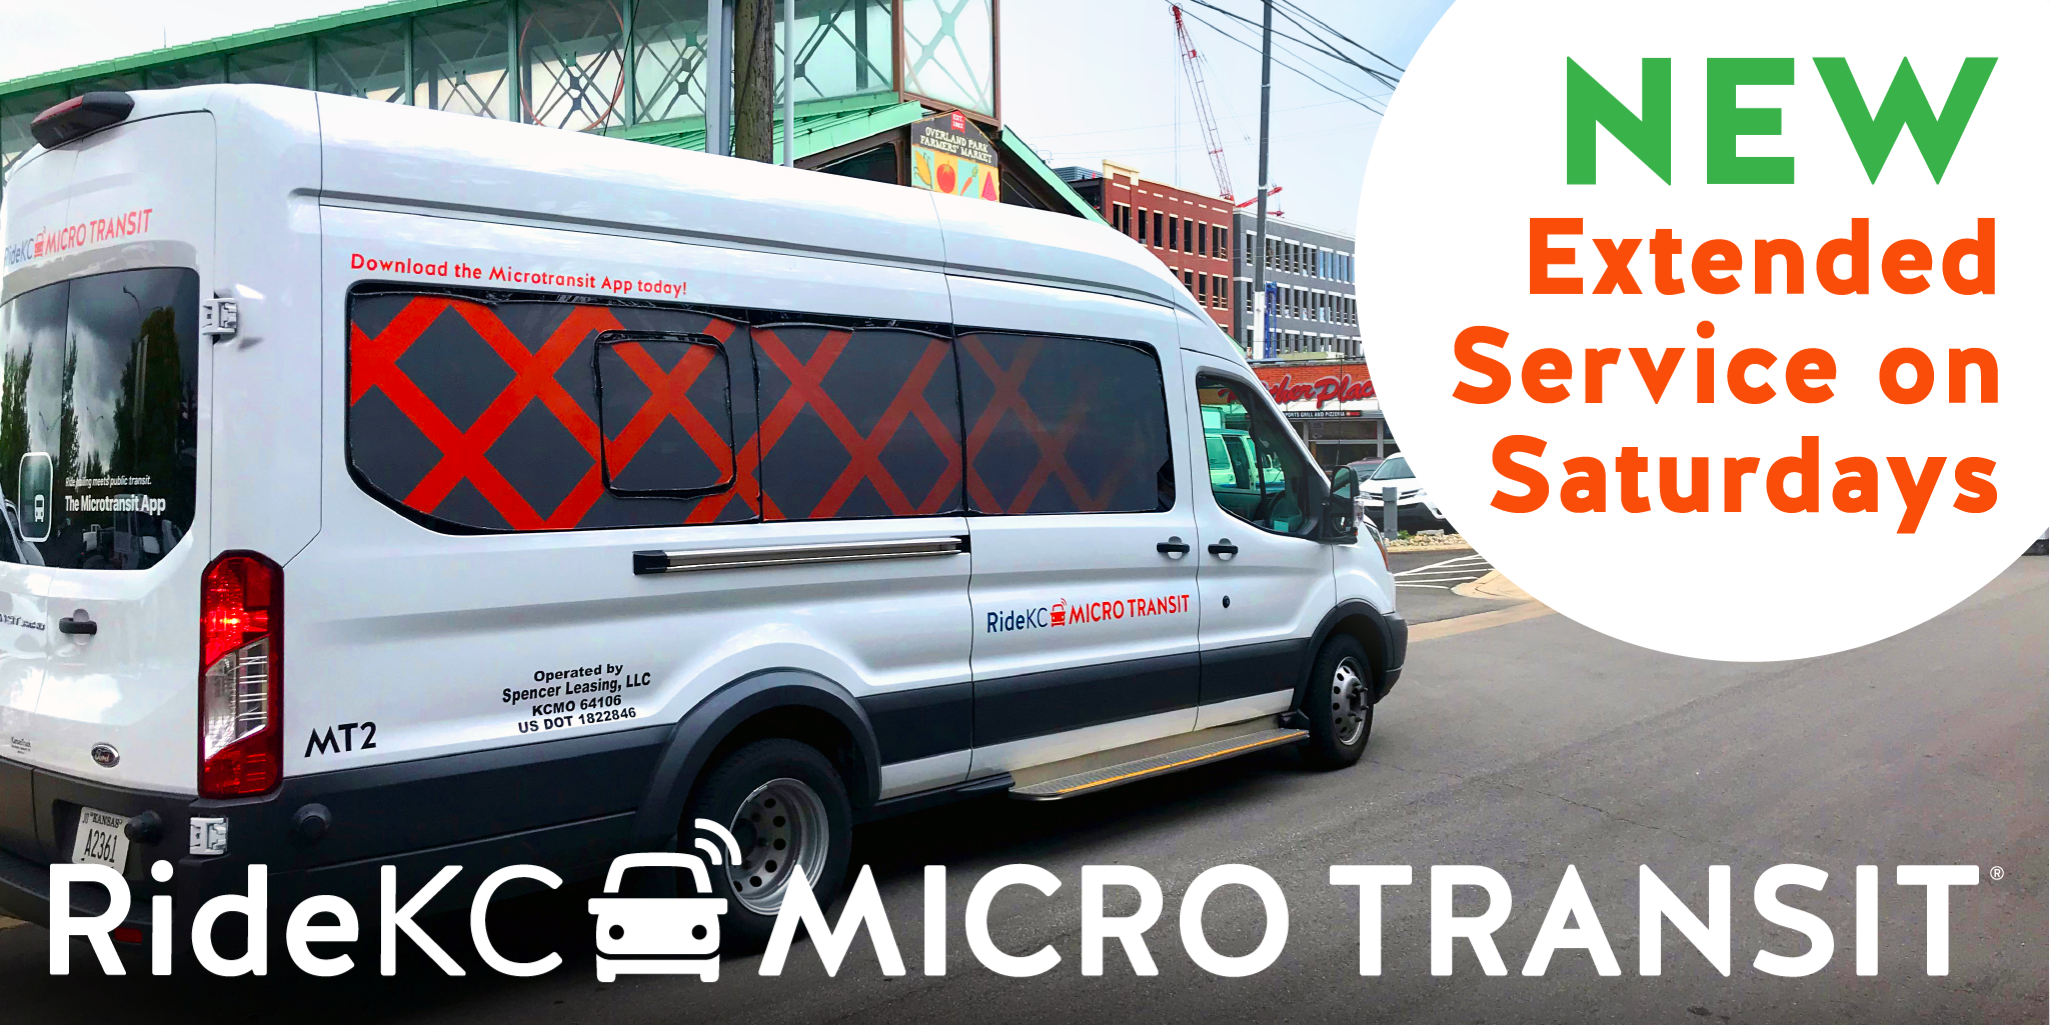 New: Saturdays on Micro Transit